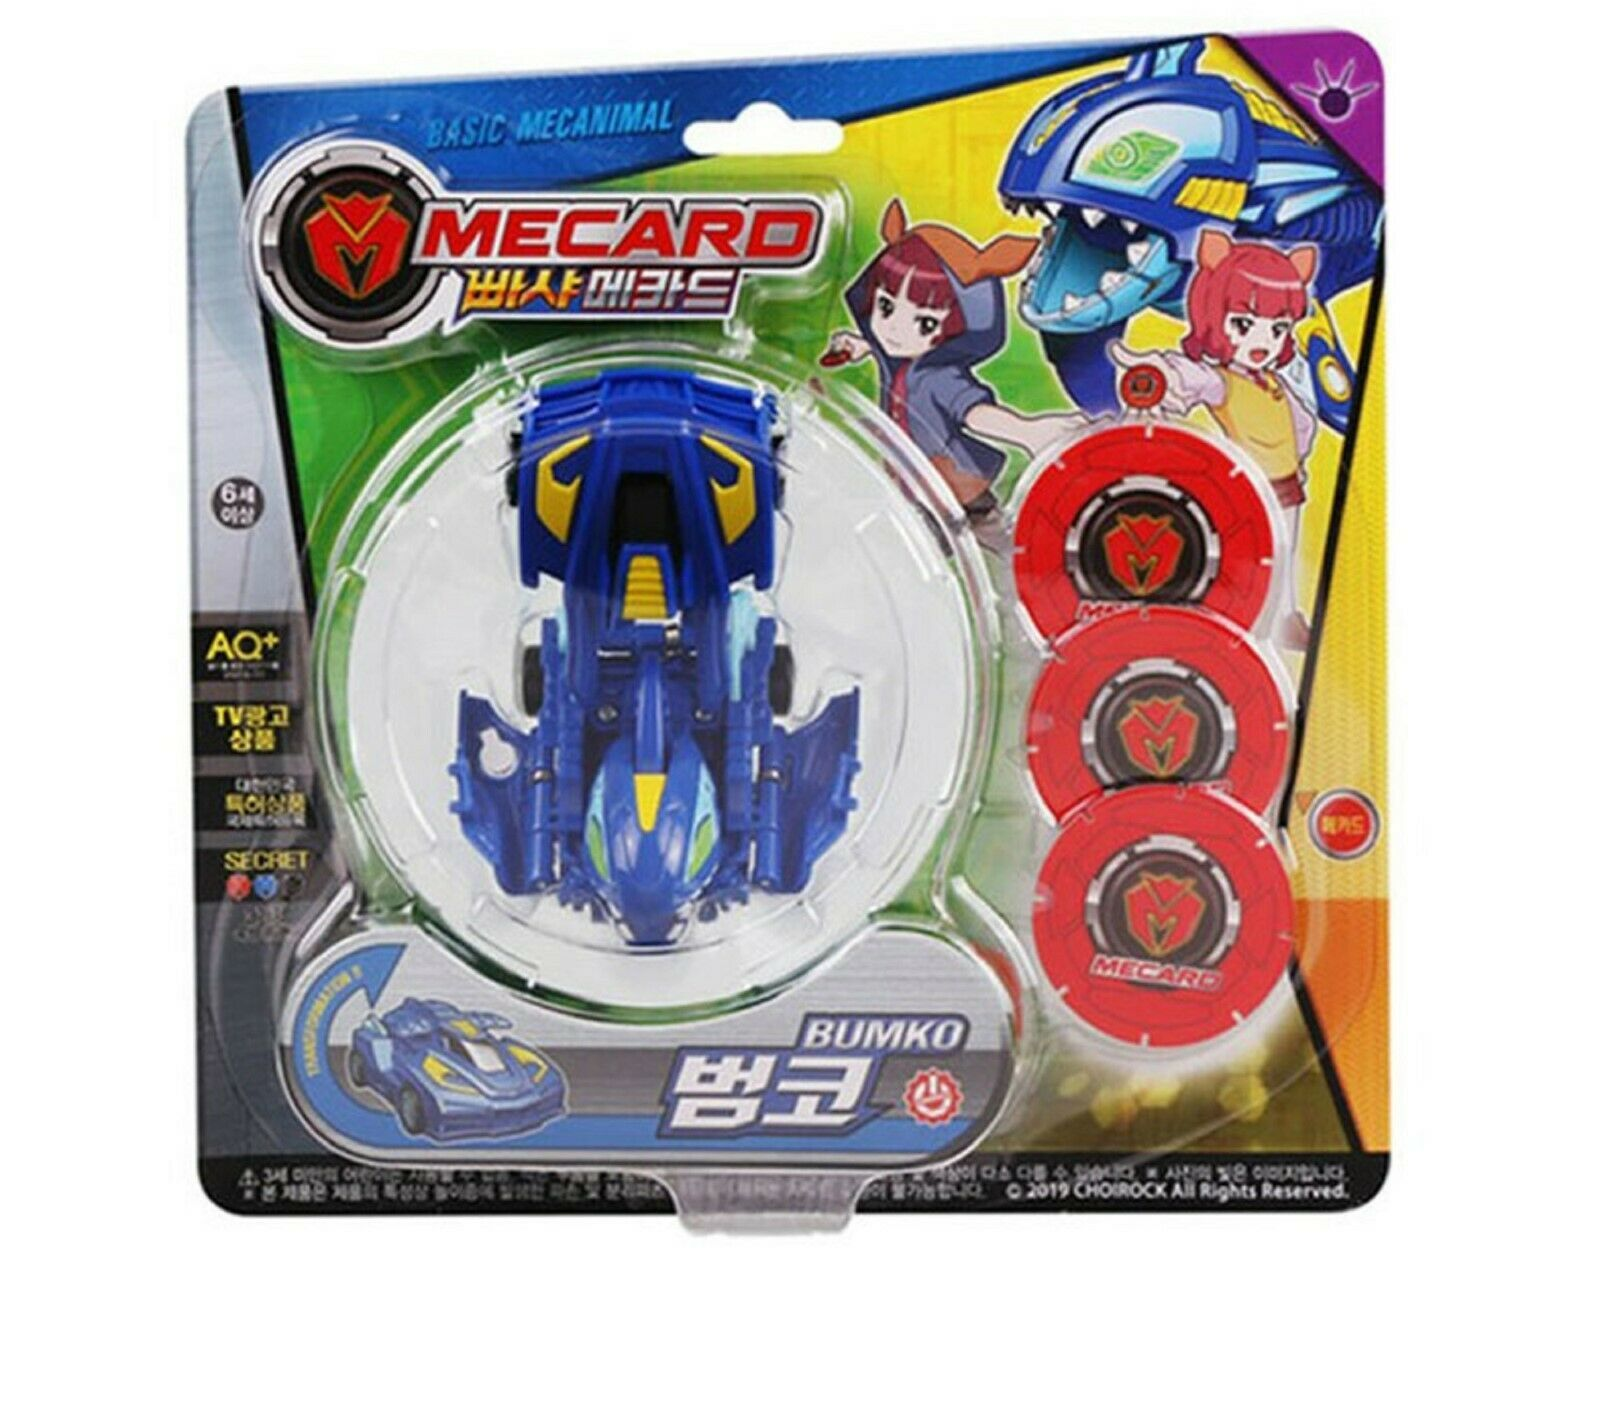 Pasha Mecard Bumko Mecardimal turning Car Transformation Toy Action Figure